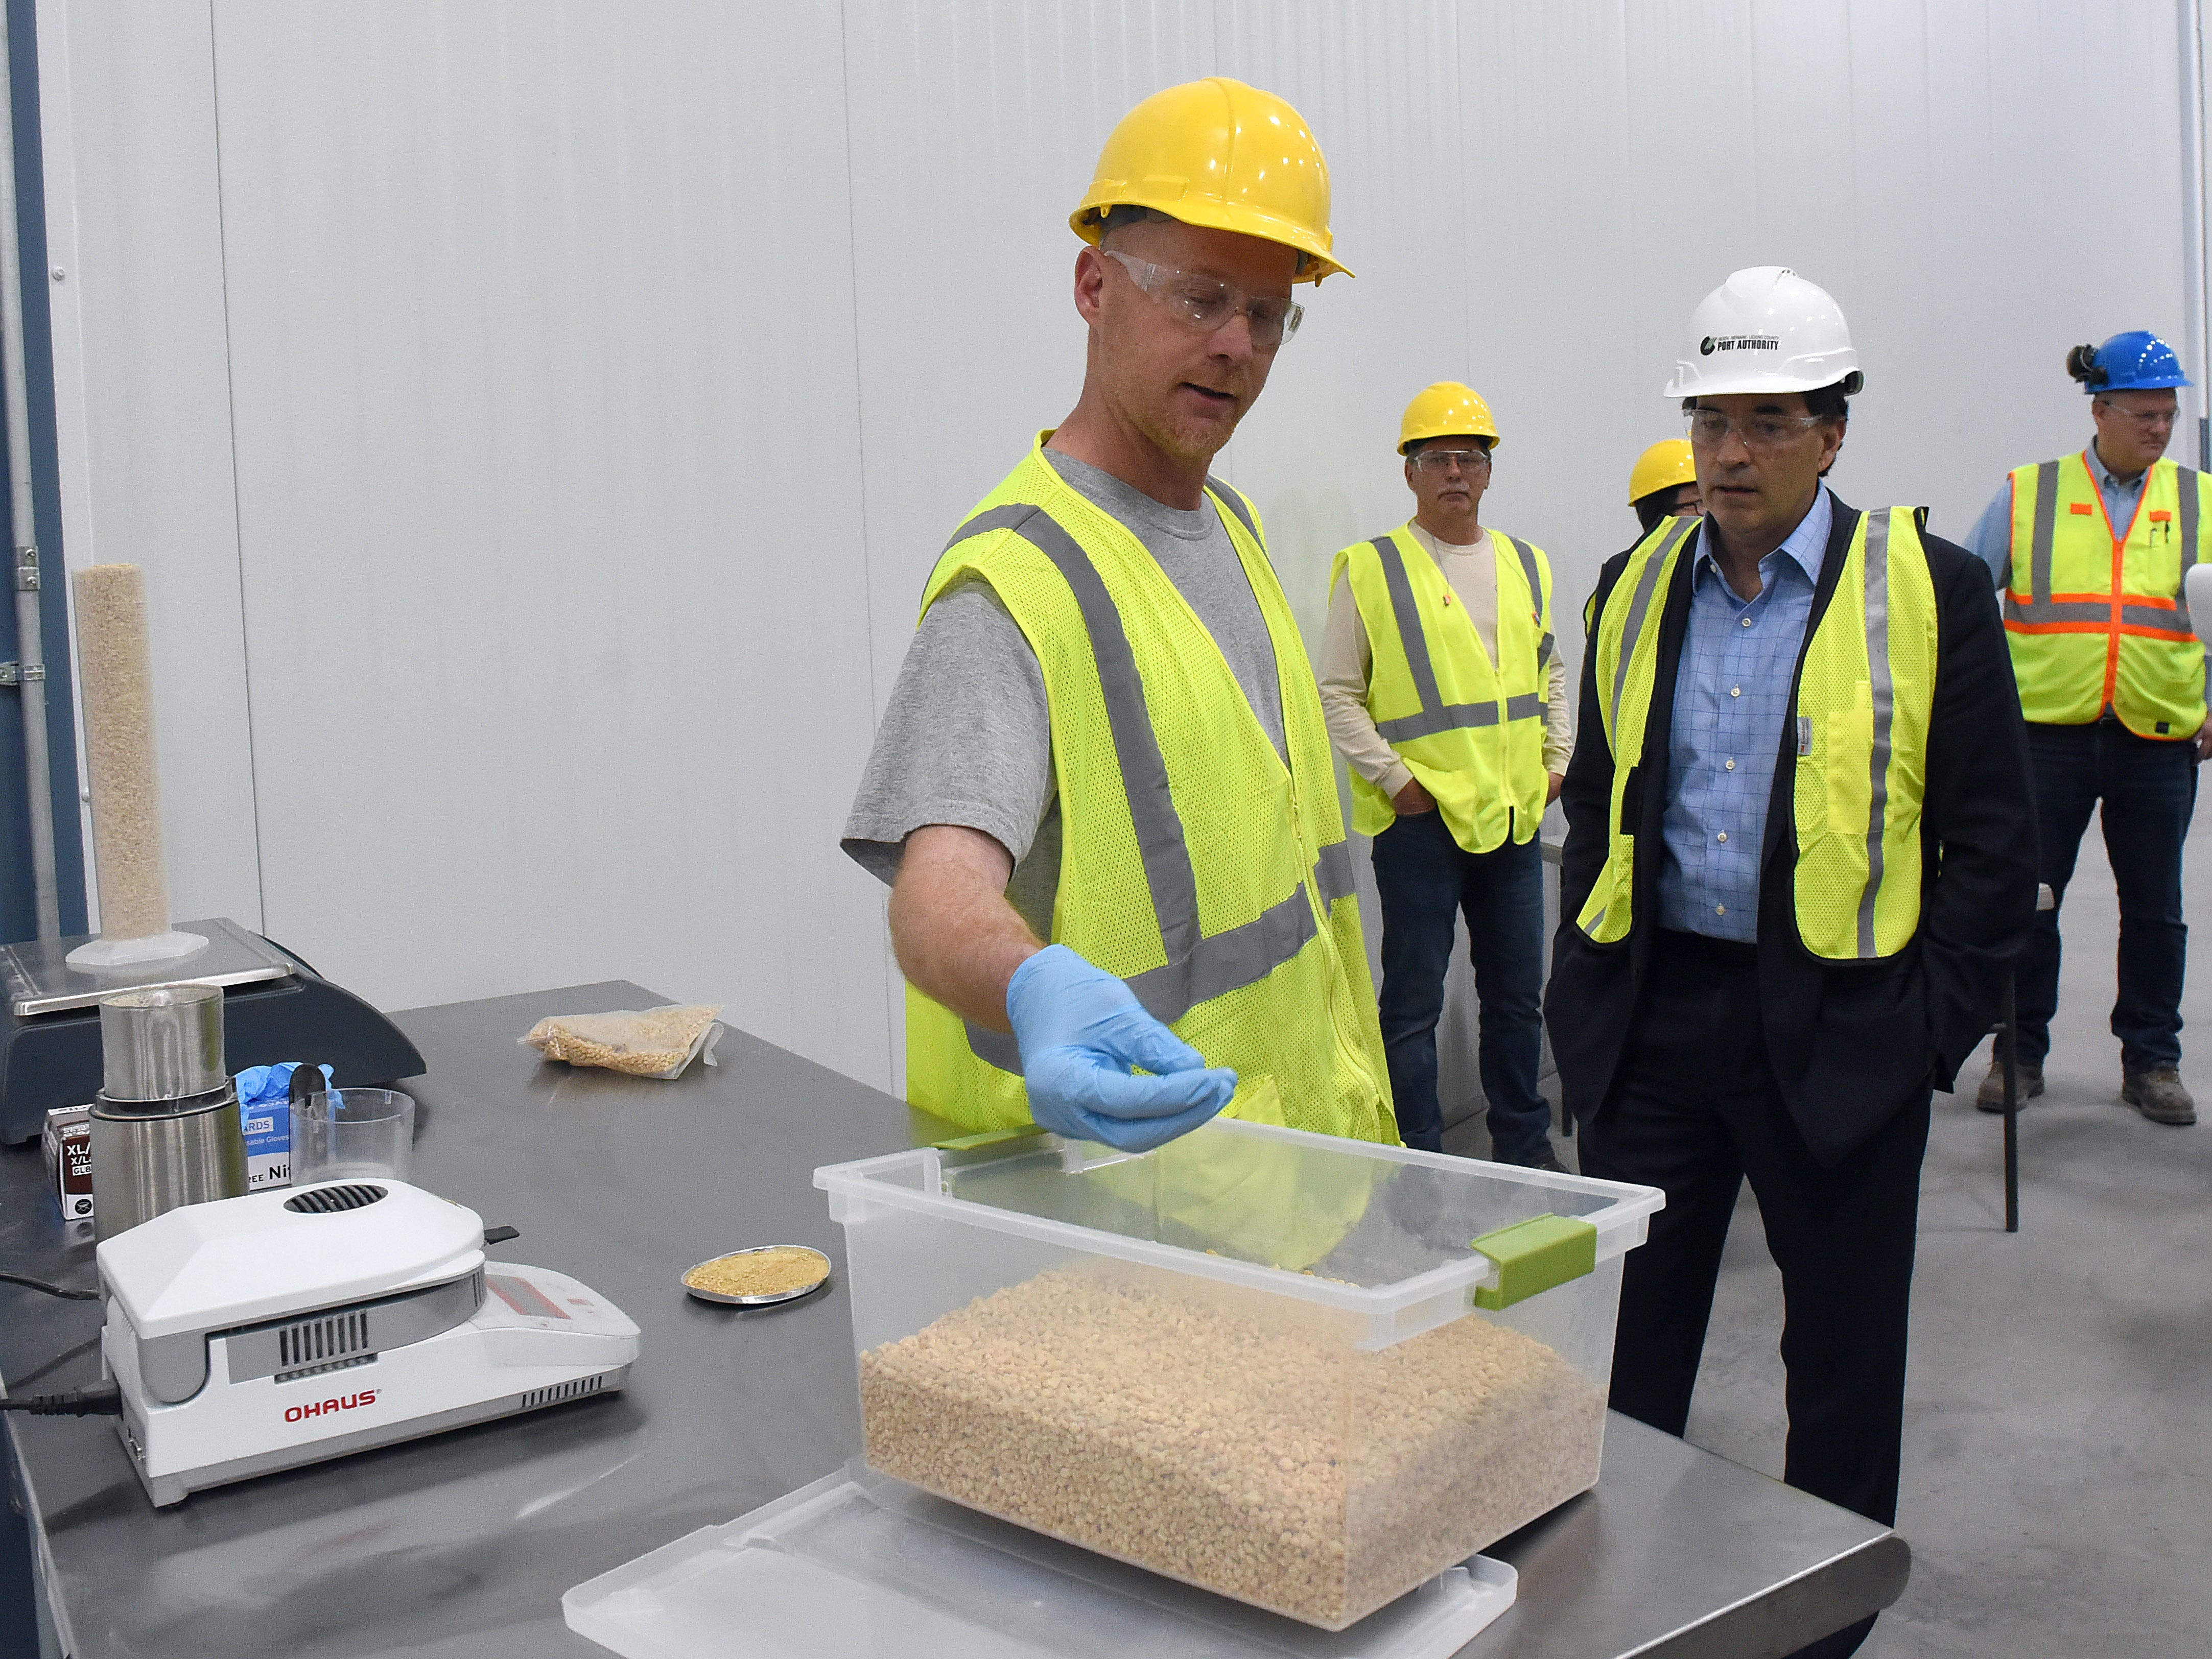 Brad Shepler with some of the finished cereal product made from non-GMO soy at GB Food.